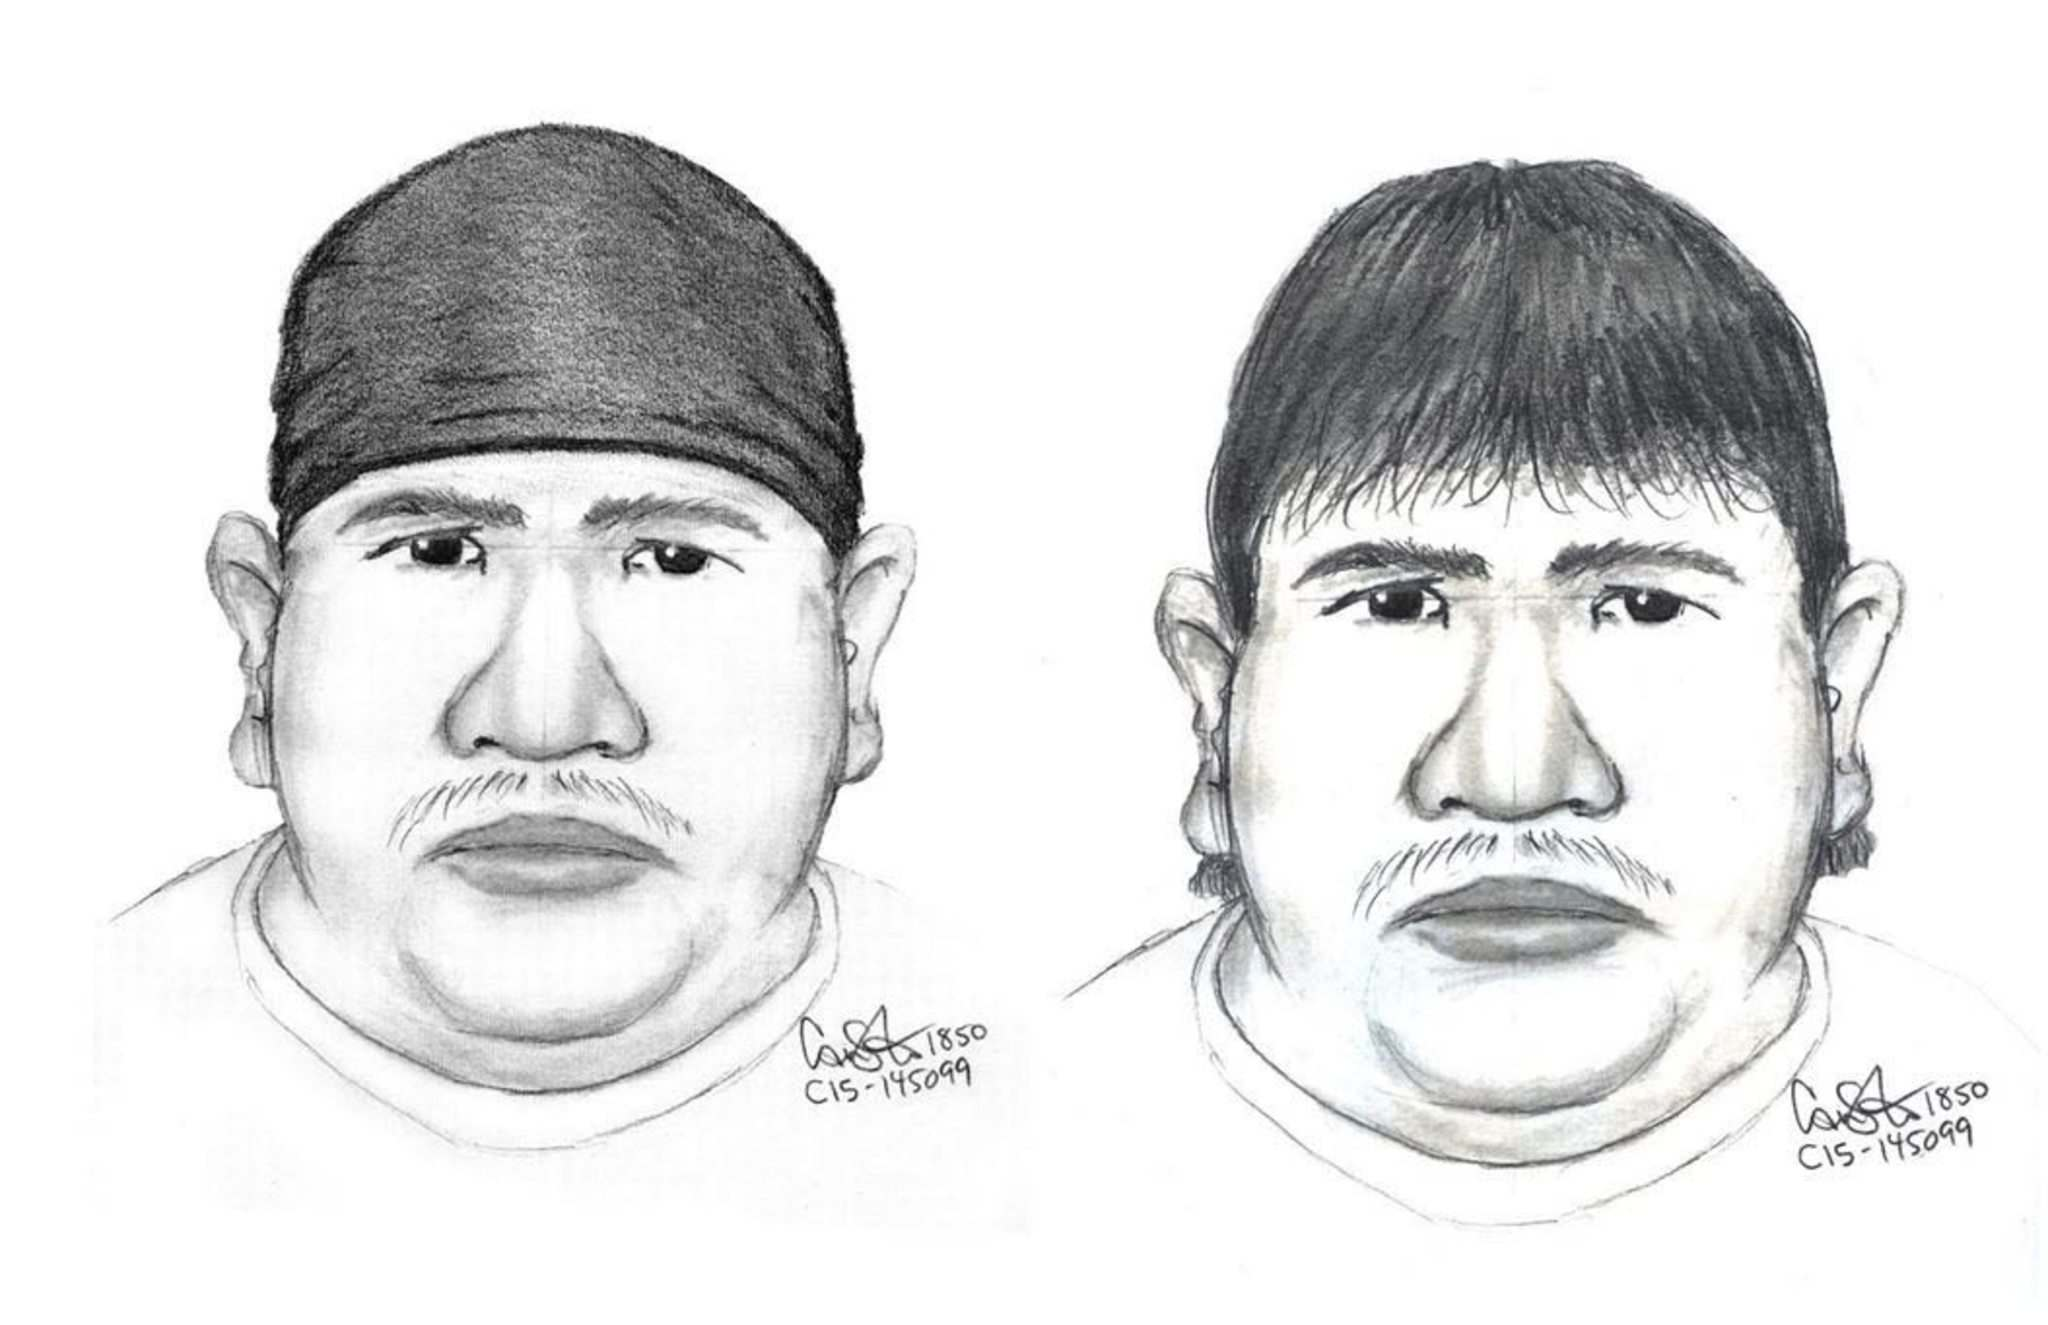 The suspect is described as: Indigenous male in his forties,- 5&rsquo;6&rdquo; &#8211; 5&rsquo;8&rdquo; in height- Heavy build, weighing approximately 270 lbs. with a large stomach and a chubby face.- Dark hair with a bowl-style cut going straight across the forehead, or possibly wearing a dark coloured skull-cap or beanie on his head.</p>